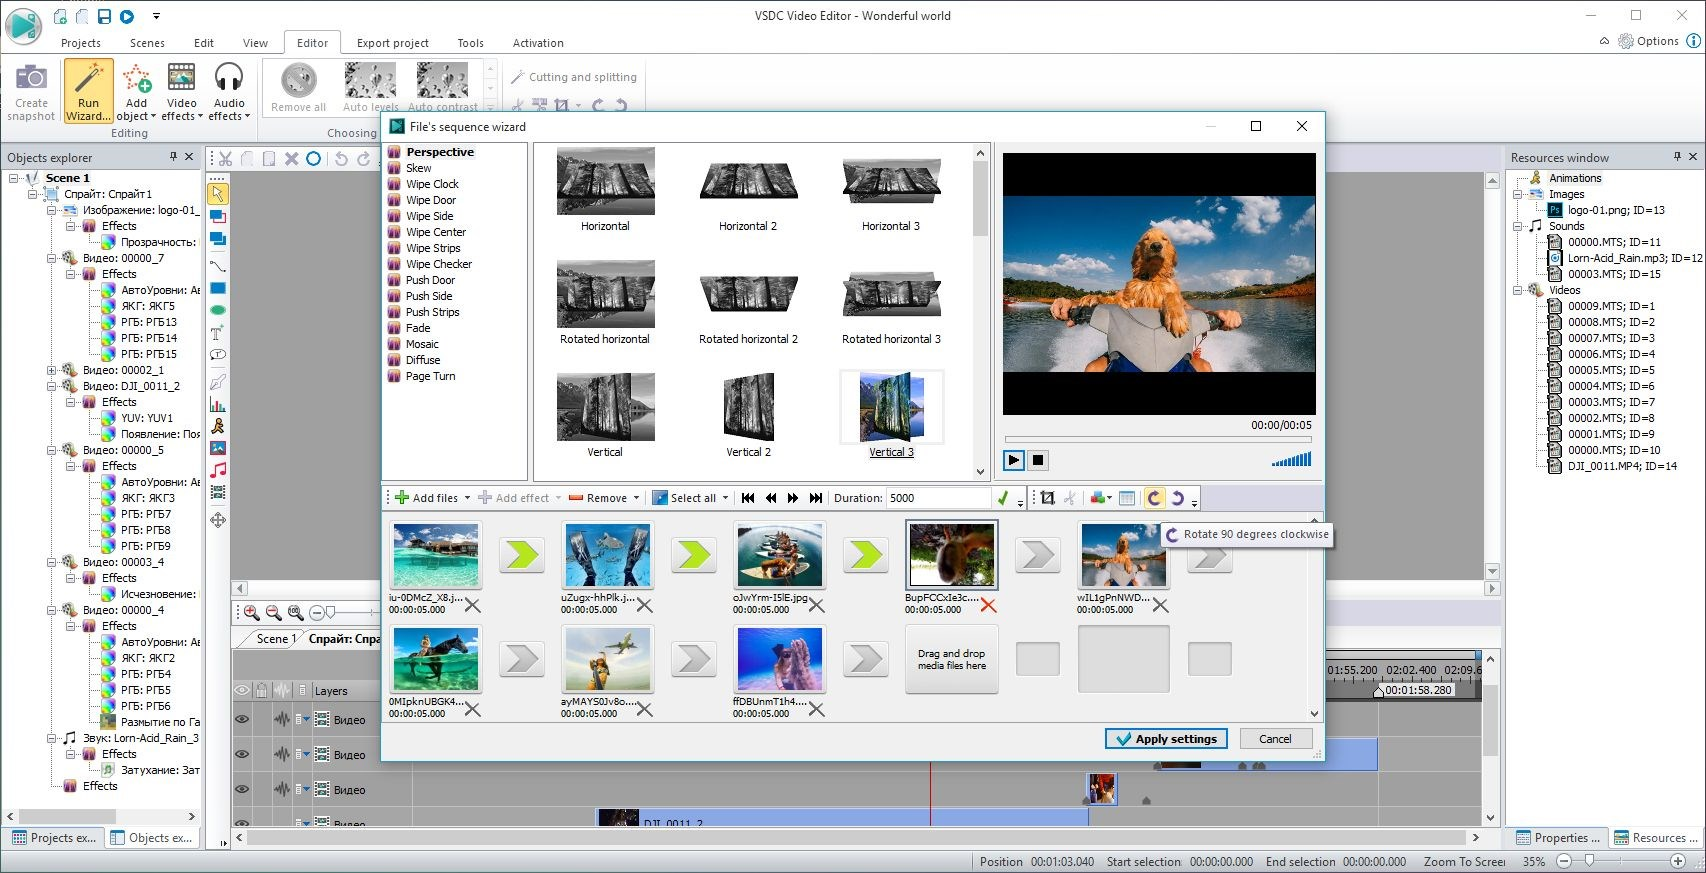 VSDC Video Editor screenshot 1